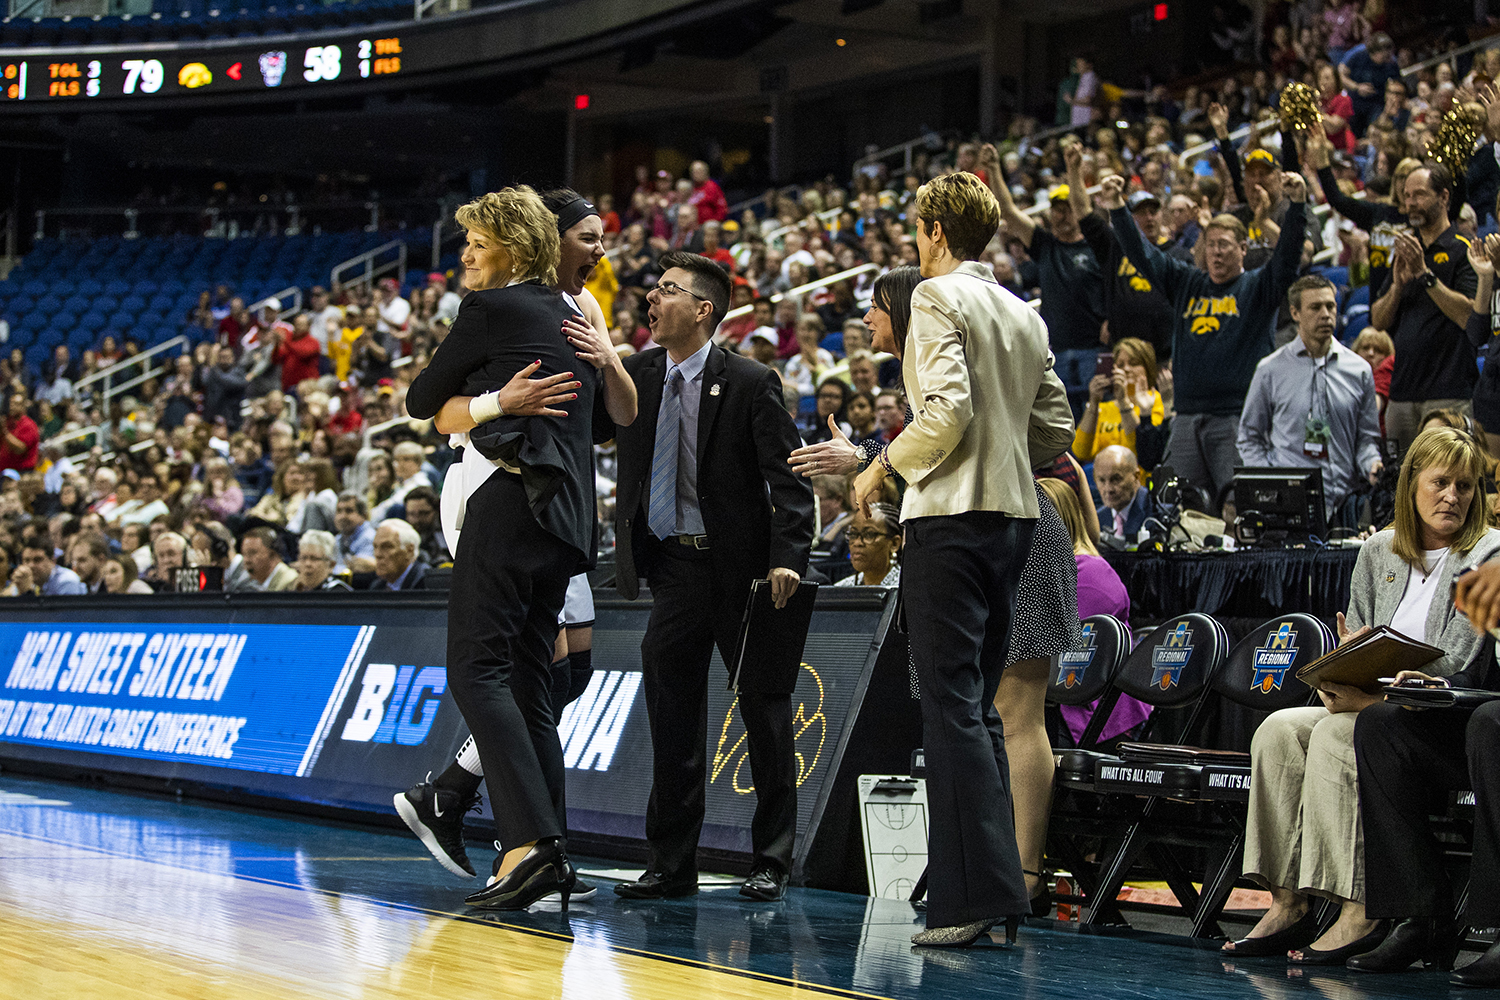 Iowa center Megan Gustafson hugs head coach Lisa Bluder after the win against NC State in the NCAA Sweet 16 game at the Greensboro Coliseum Complex on Saturday, March 30, 2019. The Hawkeyes defeated the Wolfpack 79-61.